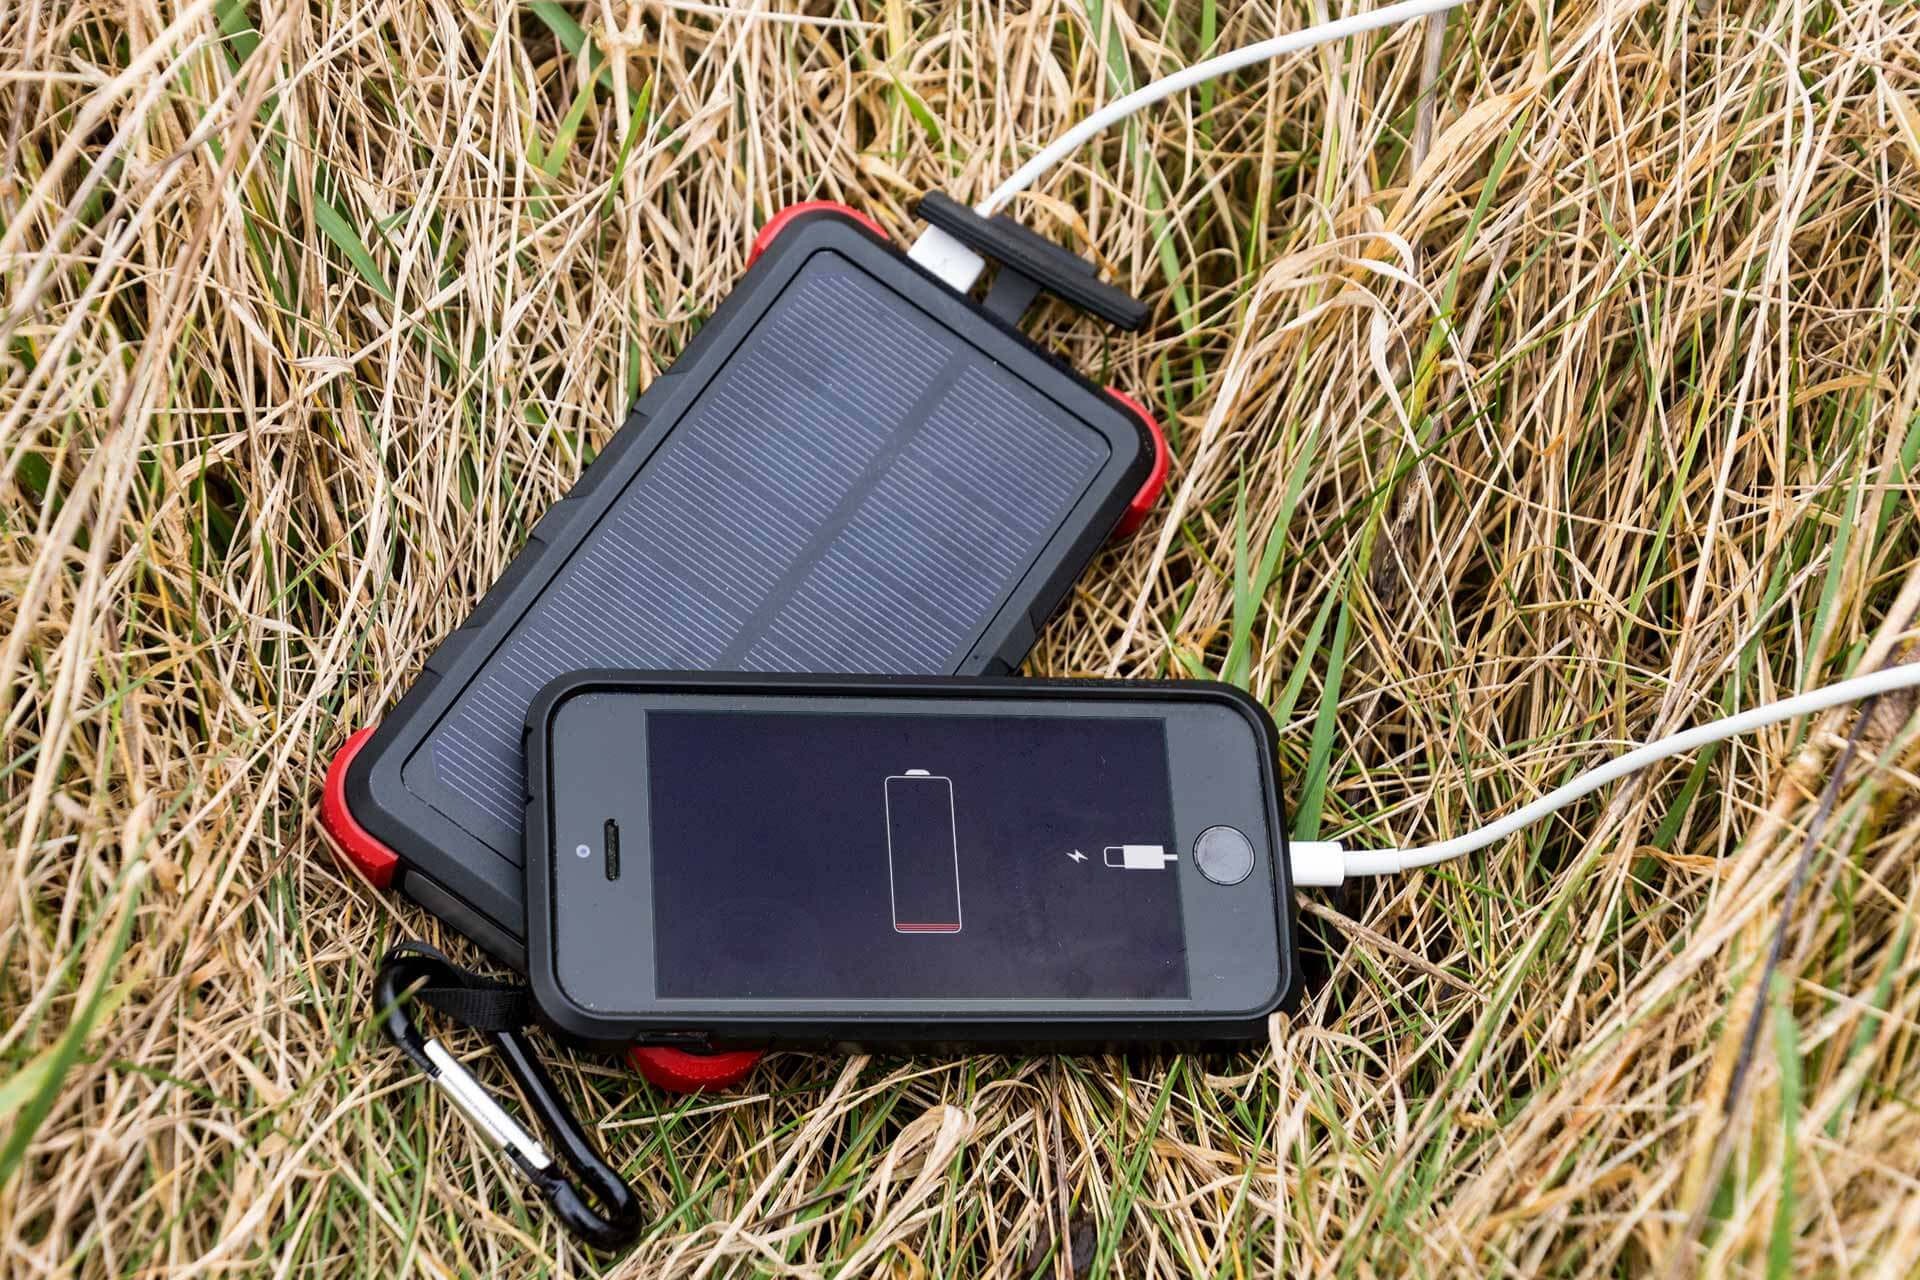 outxe savage power bank 10000mah review from thebackpacker.de